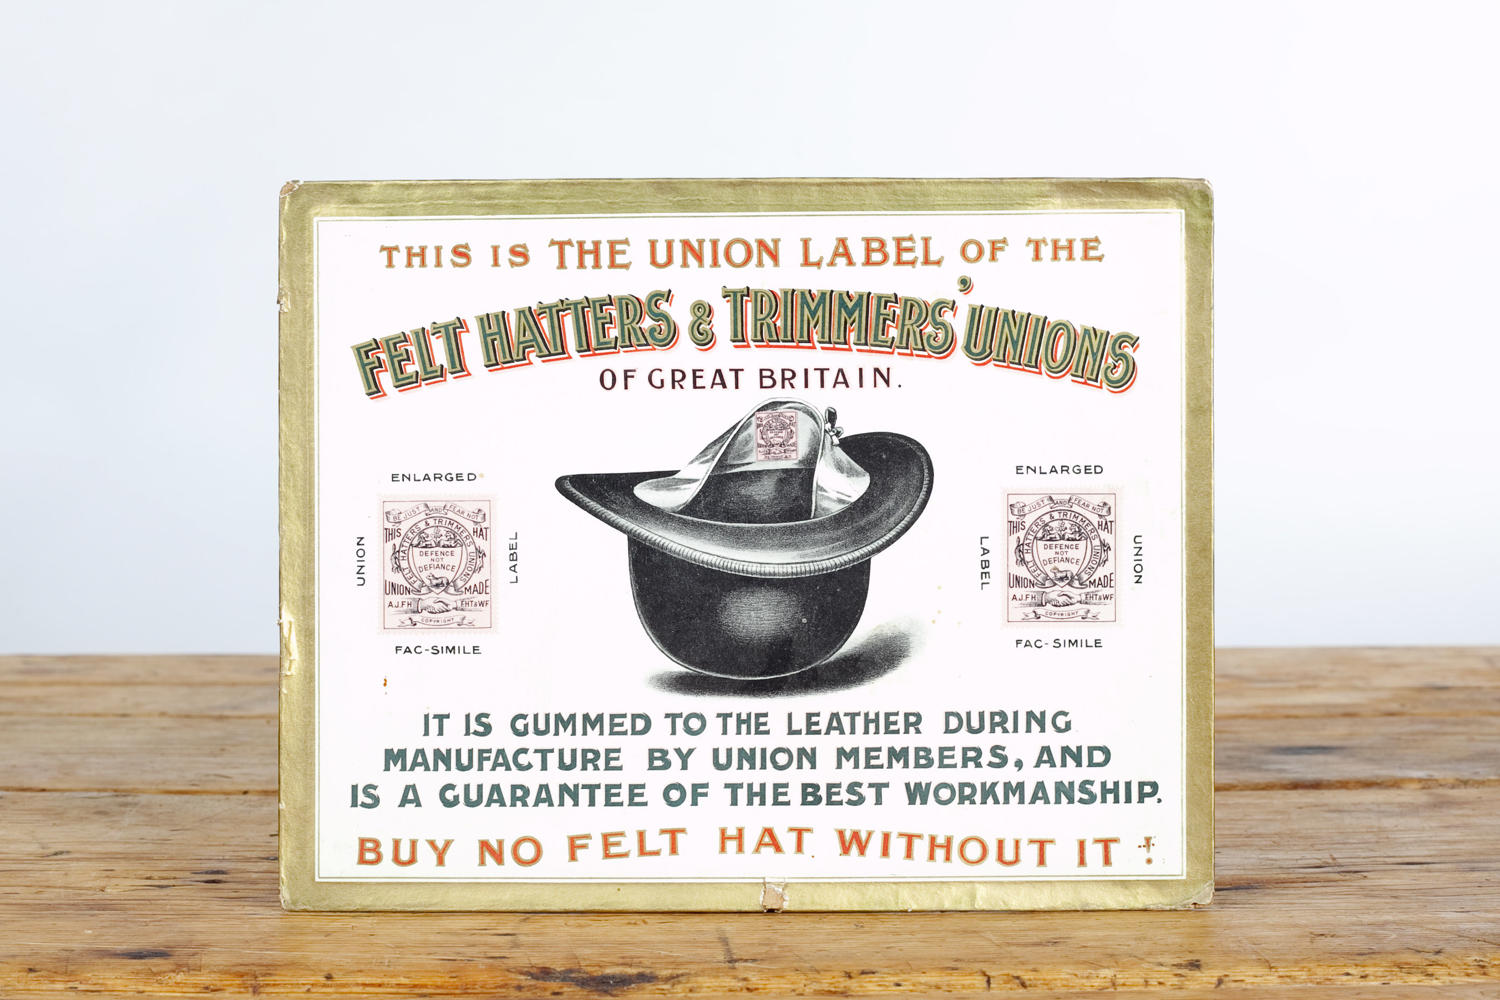 Antique showcard for the Felt Hatters and Trimmers' Unions.